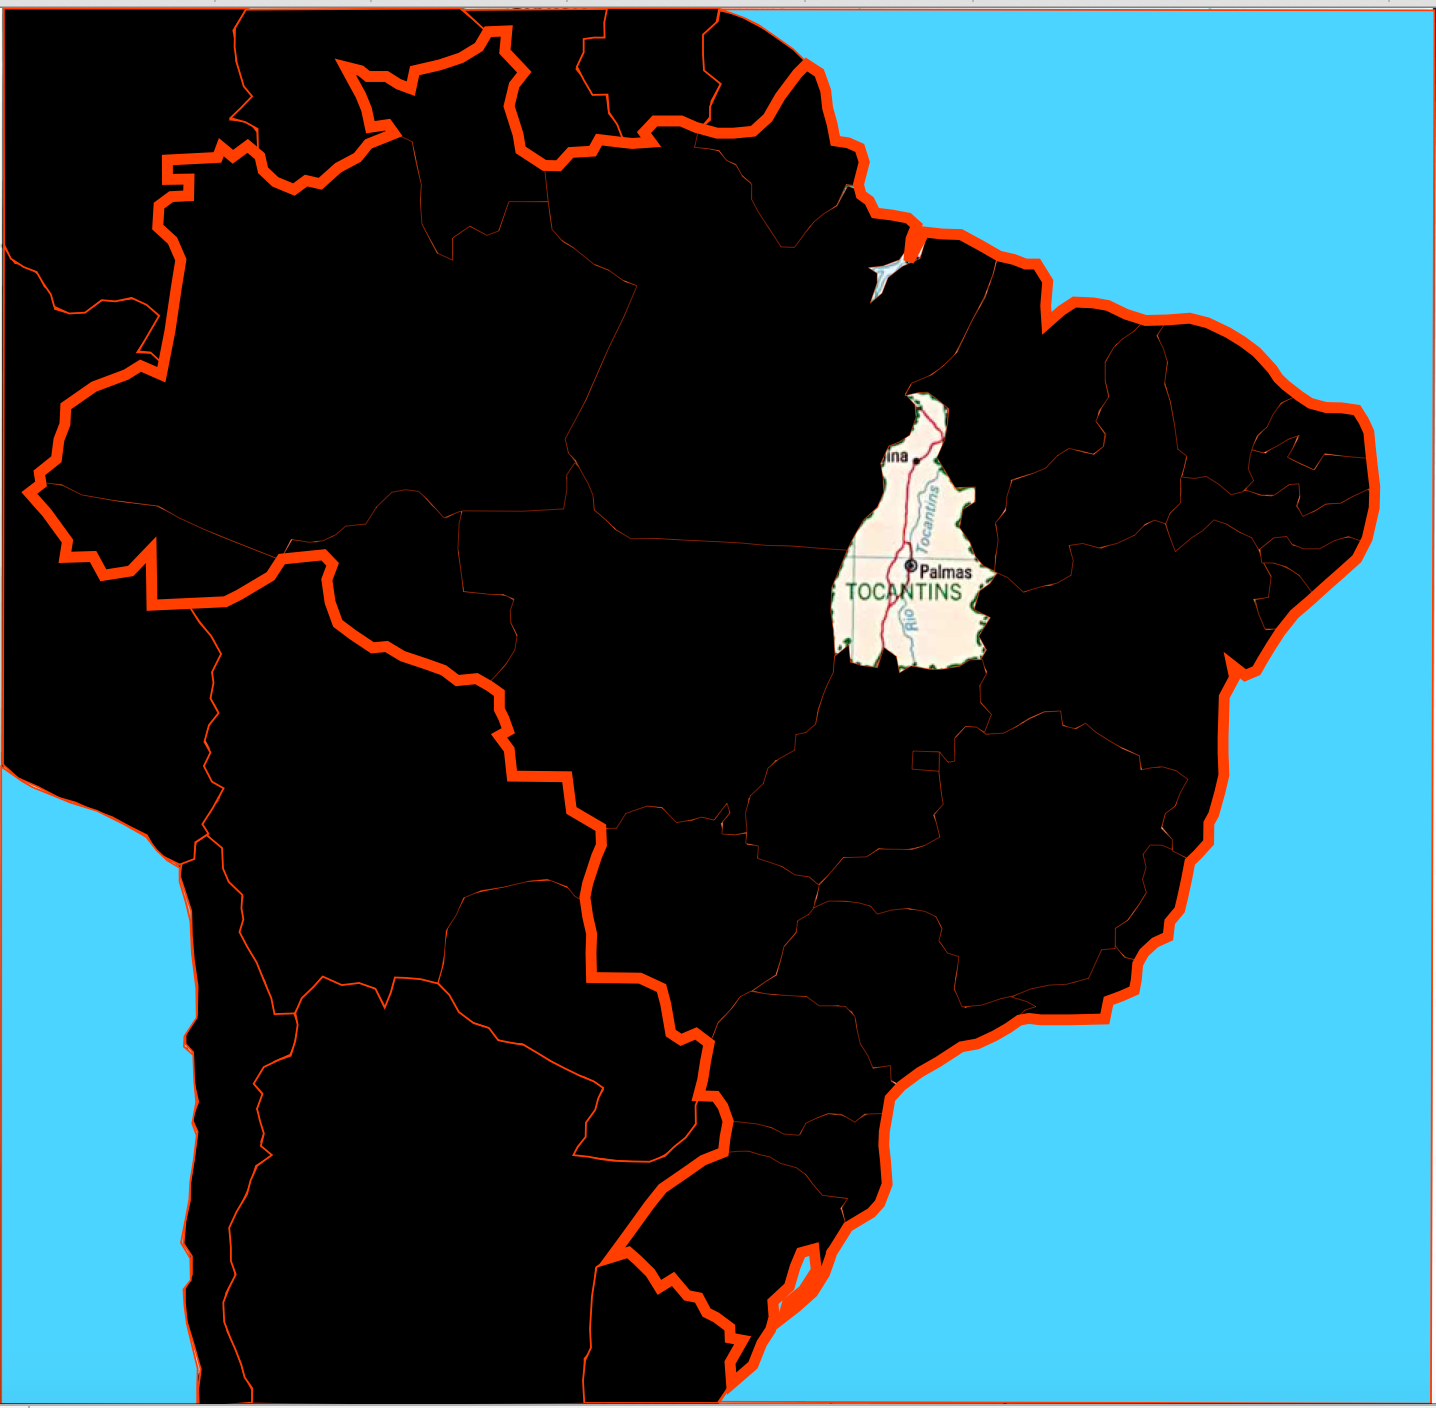 Worksheet. Customizable Maps of Brazil and Colombia and Brazilian Social